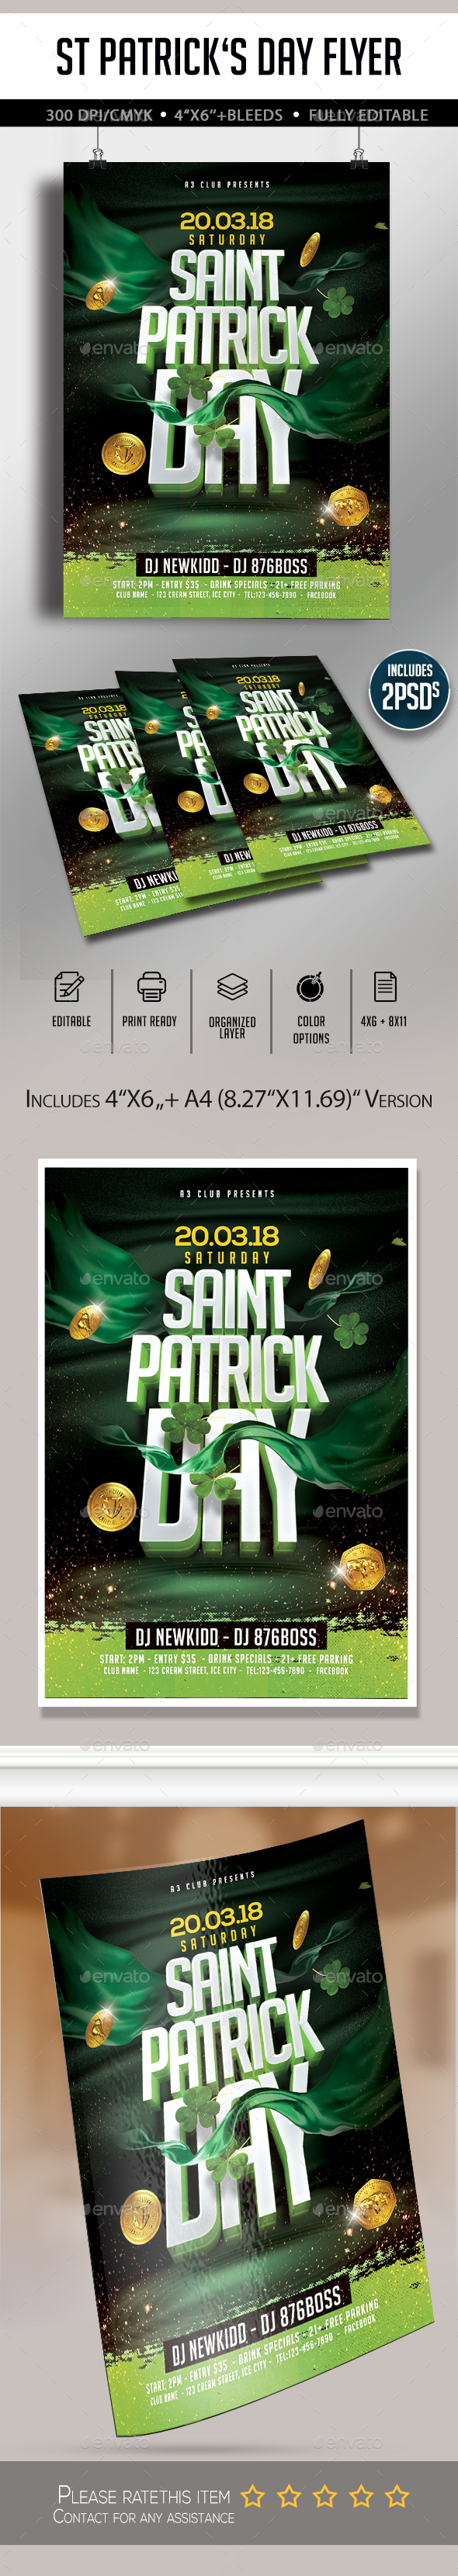 St Patrick's Day Flyer - Clubs & Parties Events